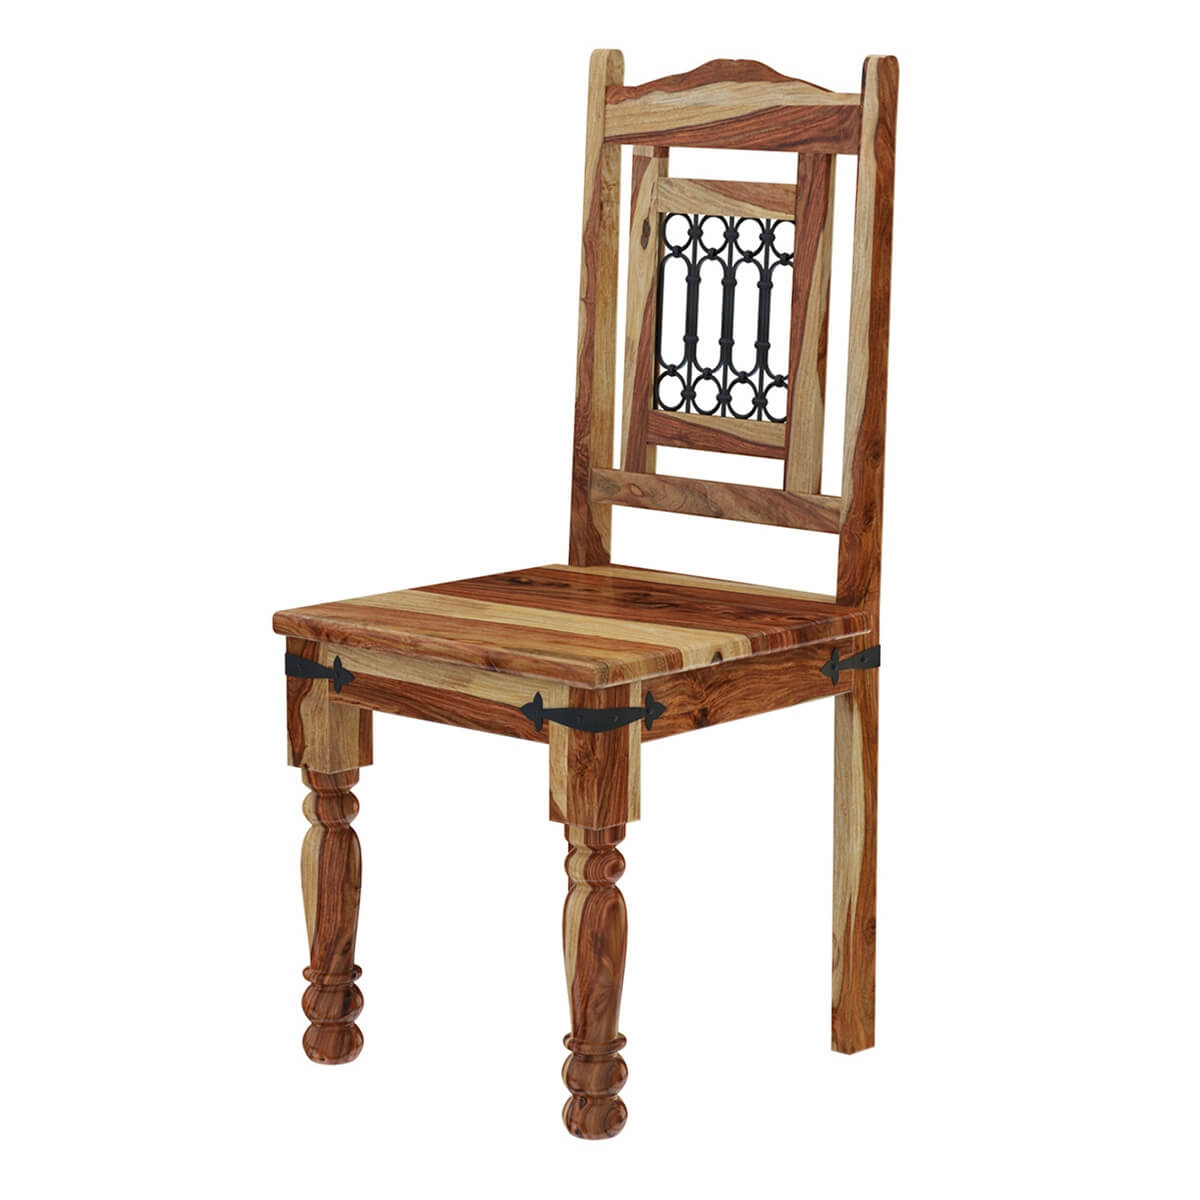 Vandana solid wood wrought iron rustic kitchen dining chair for Kitchen chairs